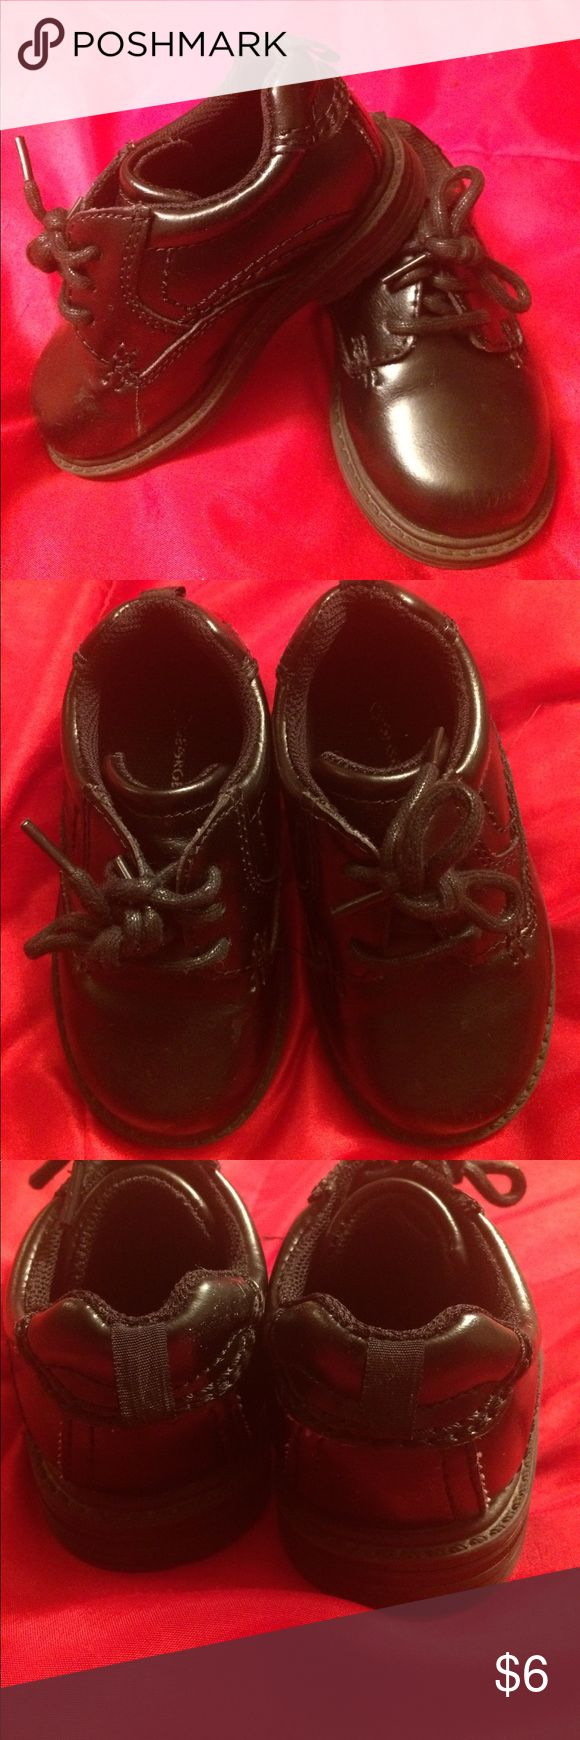 Sz 6 Toddler Boy dress shoes Very nice sz 6 toddler boy dress shoes. These have no wear as we wore them very little. These are perfect for church or any special occasion! Ask any question before purchasing. Thank you for looking! :) George Shoes Dress Shoes